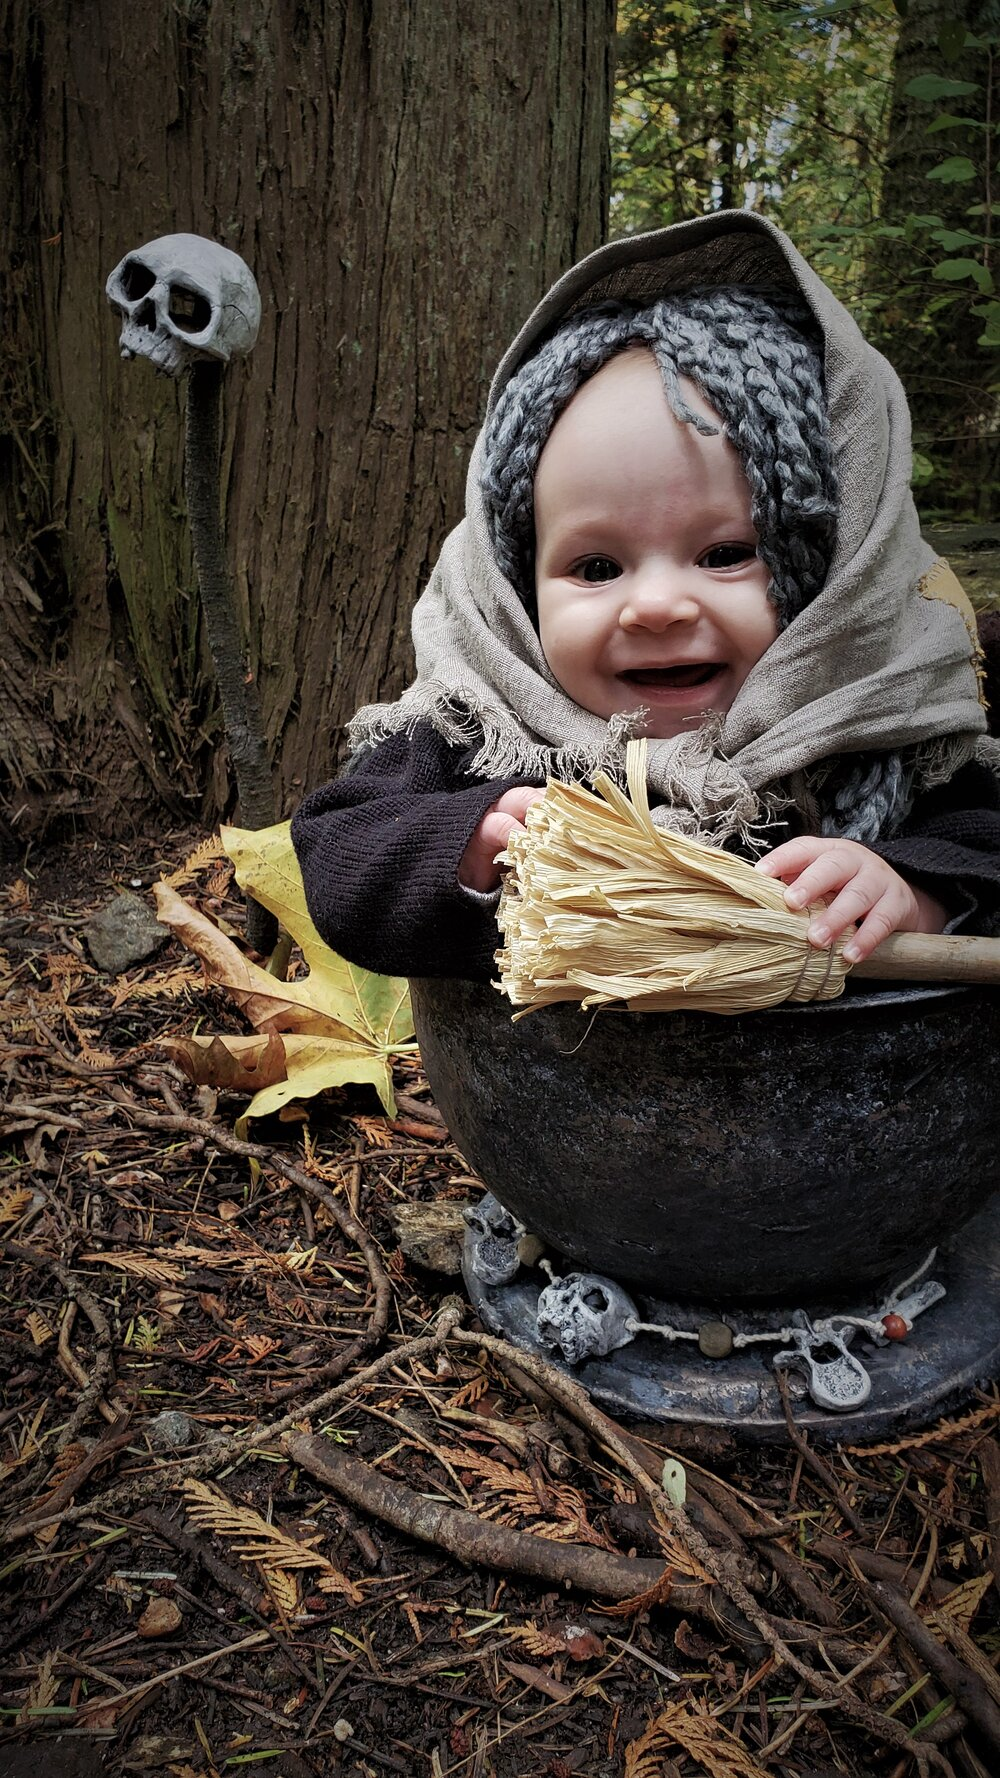 Baby Baba Yaga in mortar on ground in woods